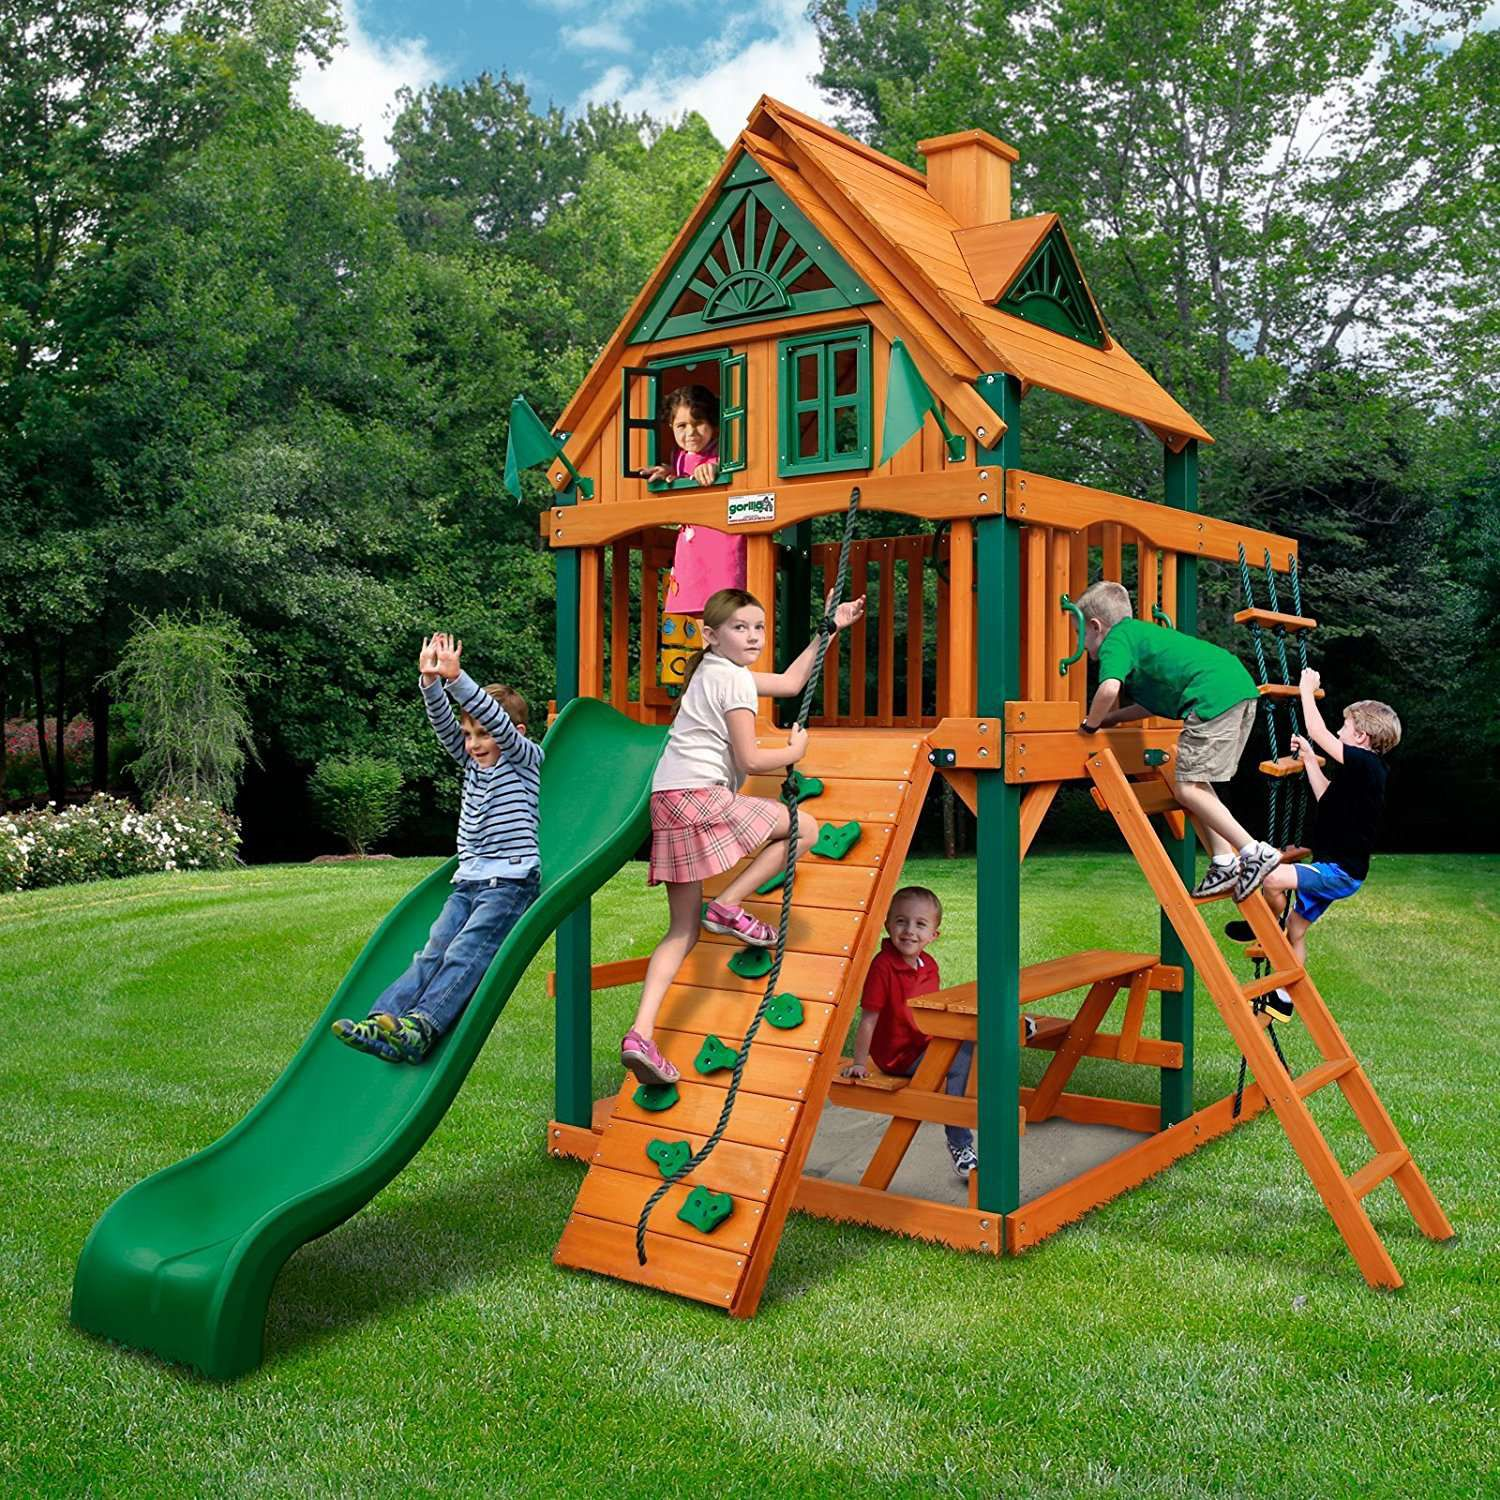 - The 8 Best Wooden Swing Sets And Playsets To Buy In 2018